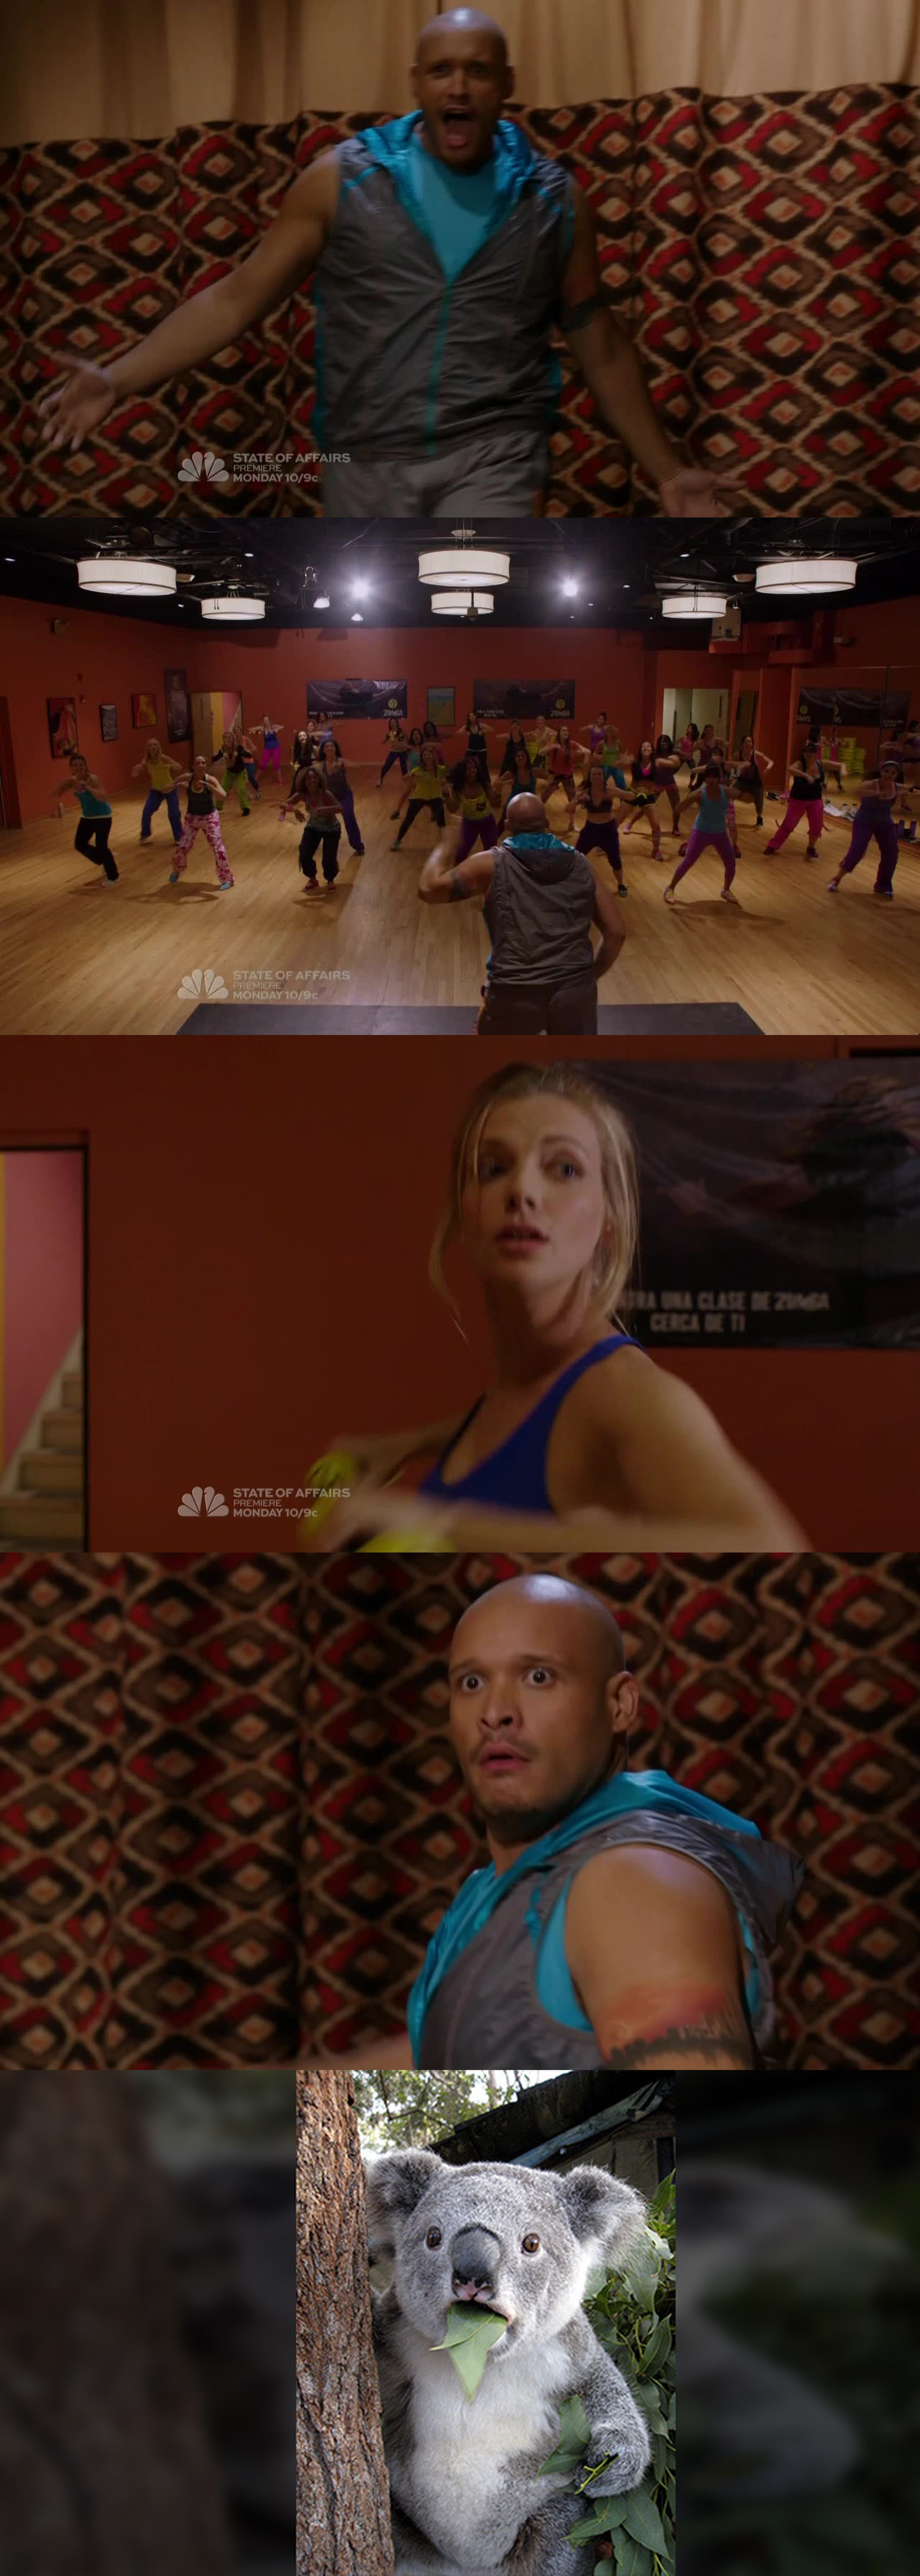 MAN!?!!.....You made laugh so much....Best funny scene!  Cheers to Zumba! ;-)